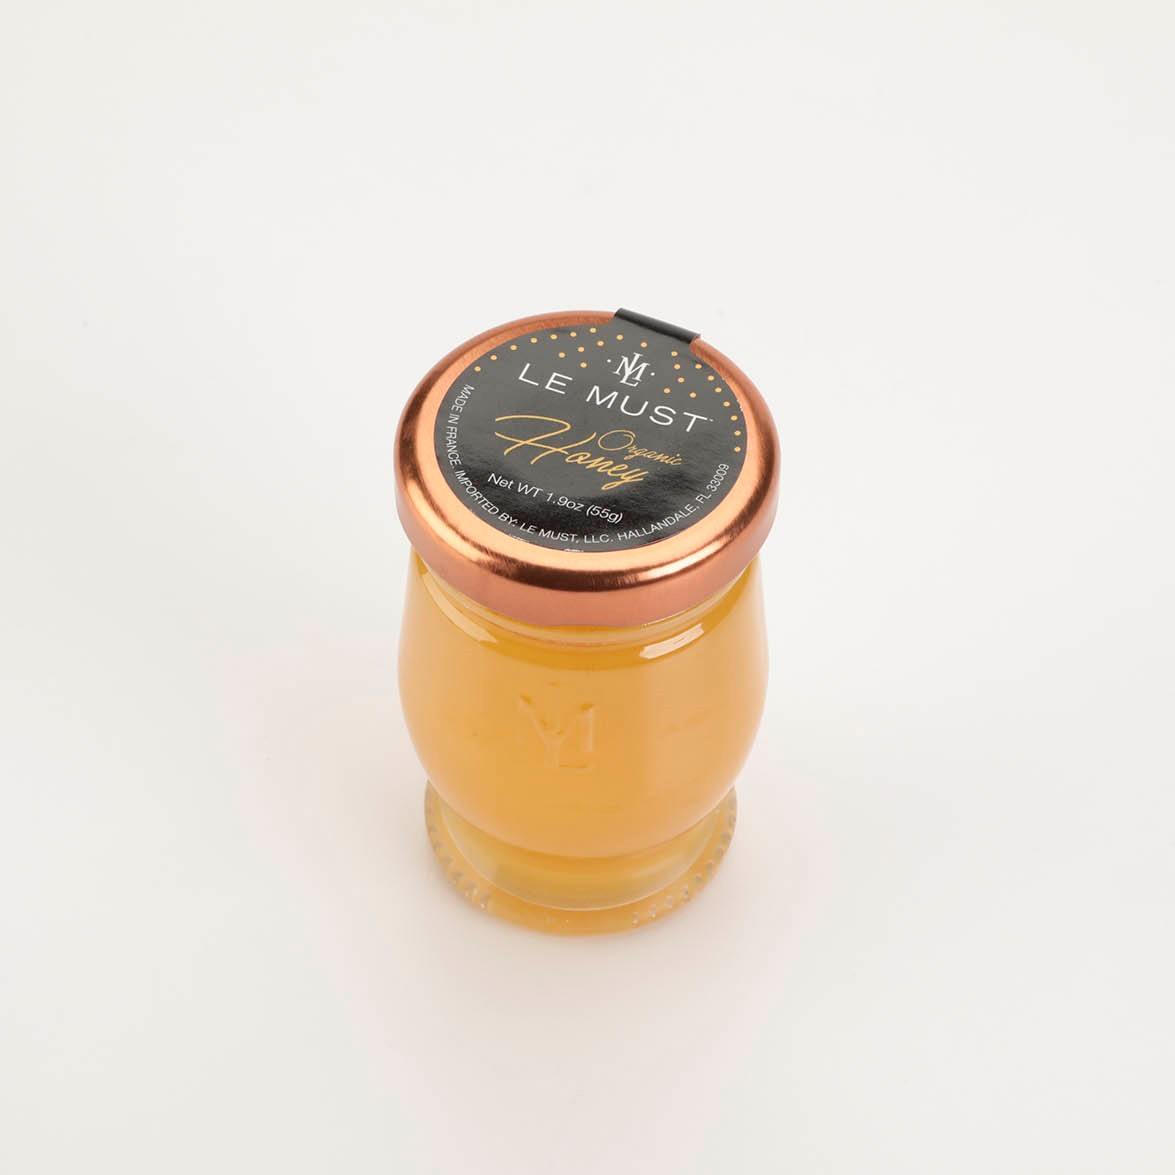 Le Must Organic Single Serve Honey Luxury In Room Dining Top